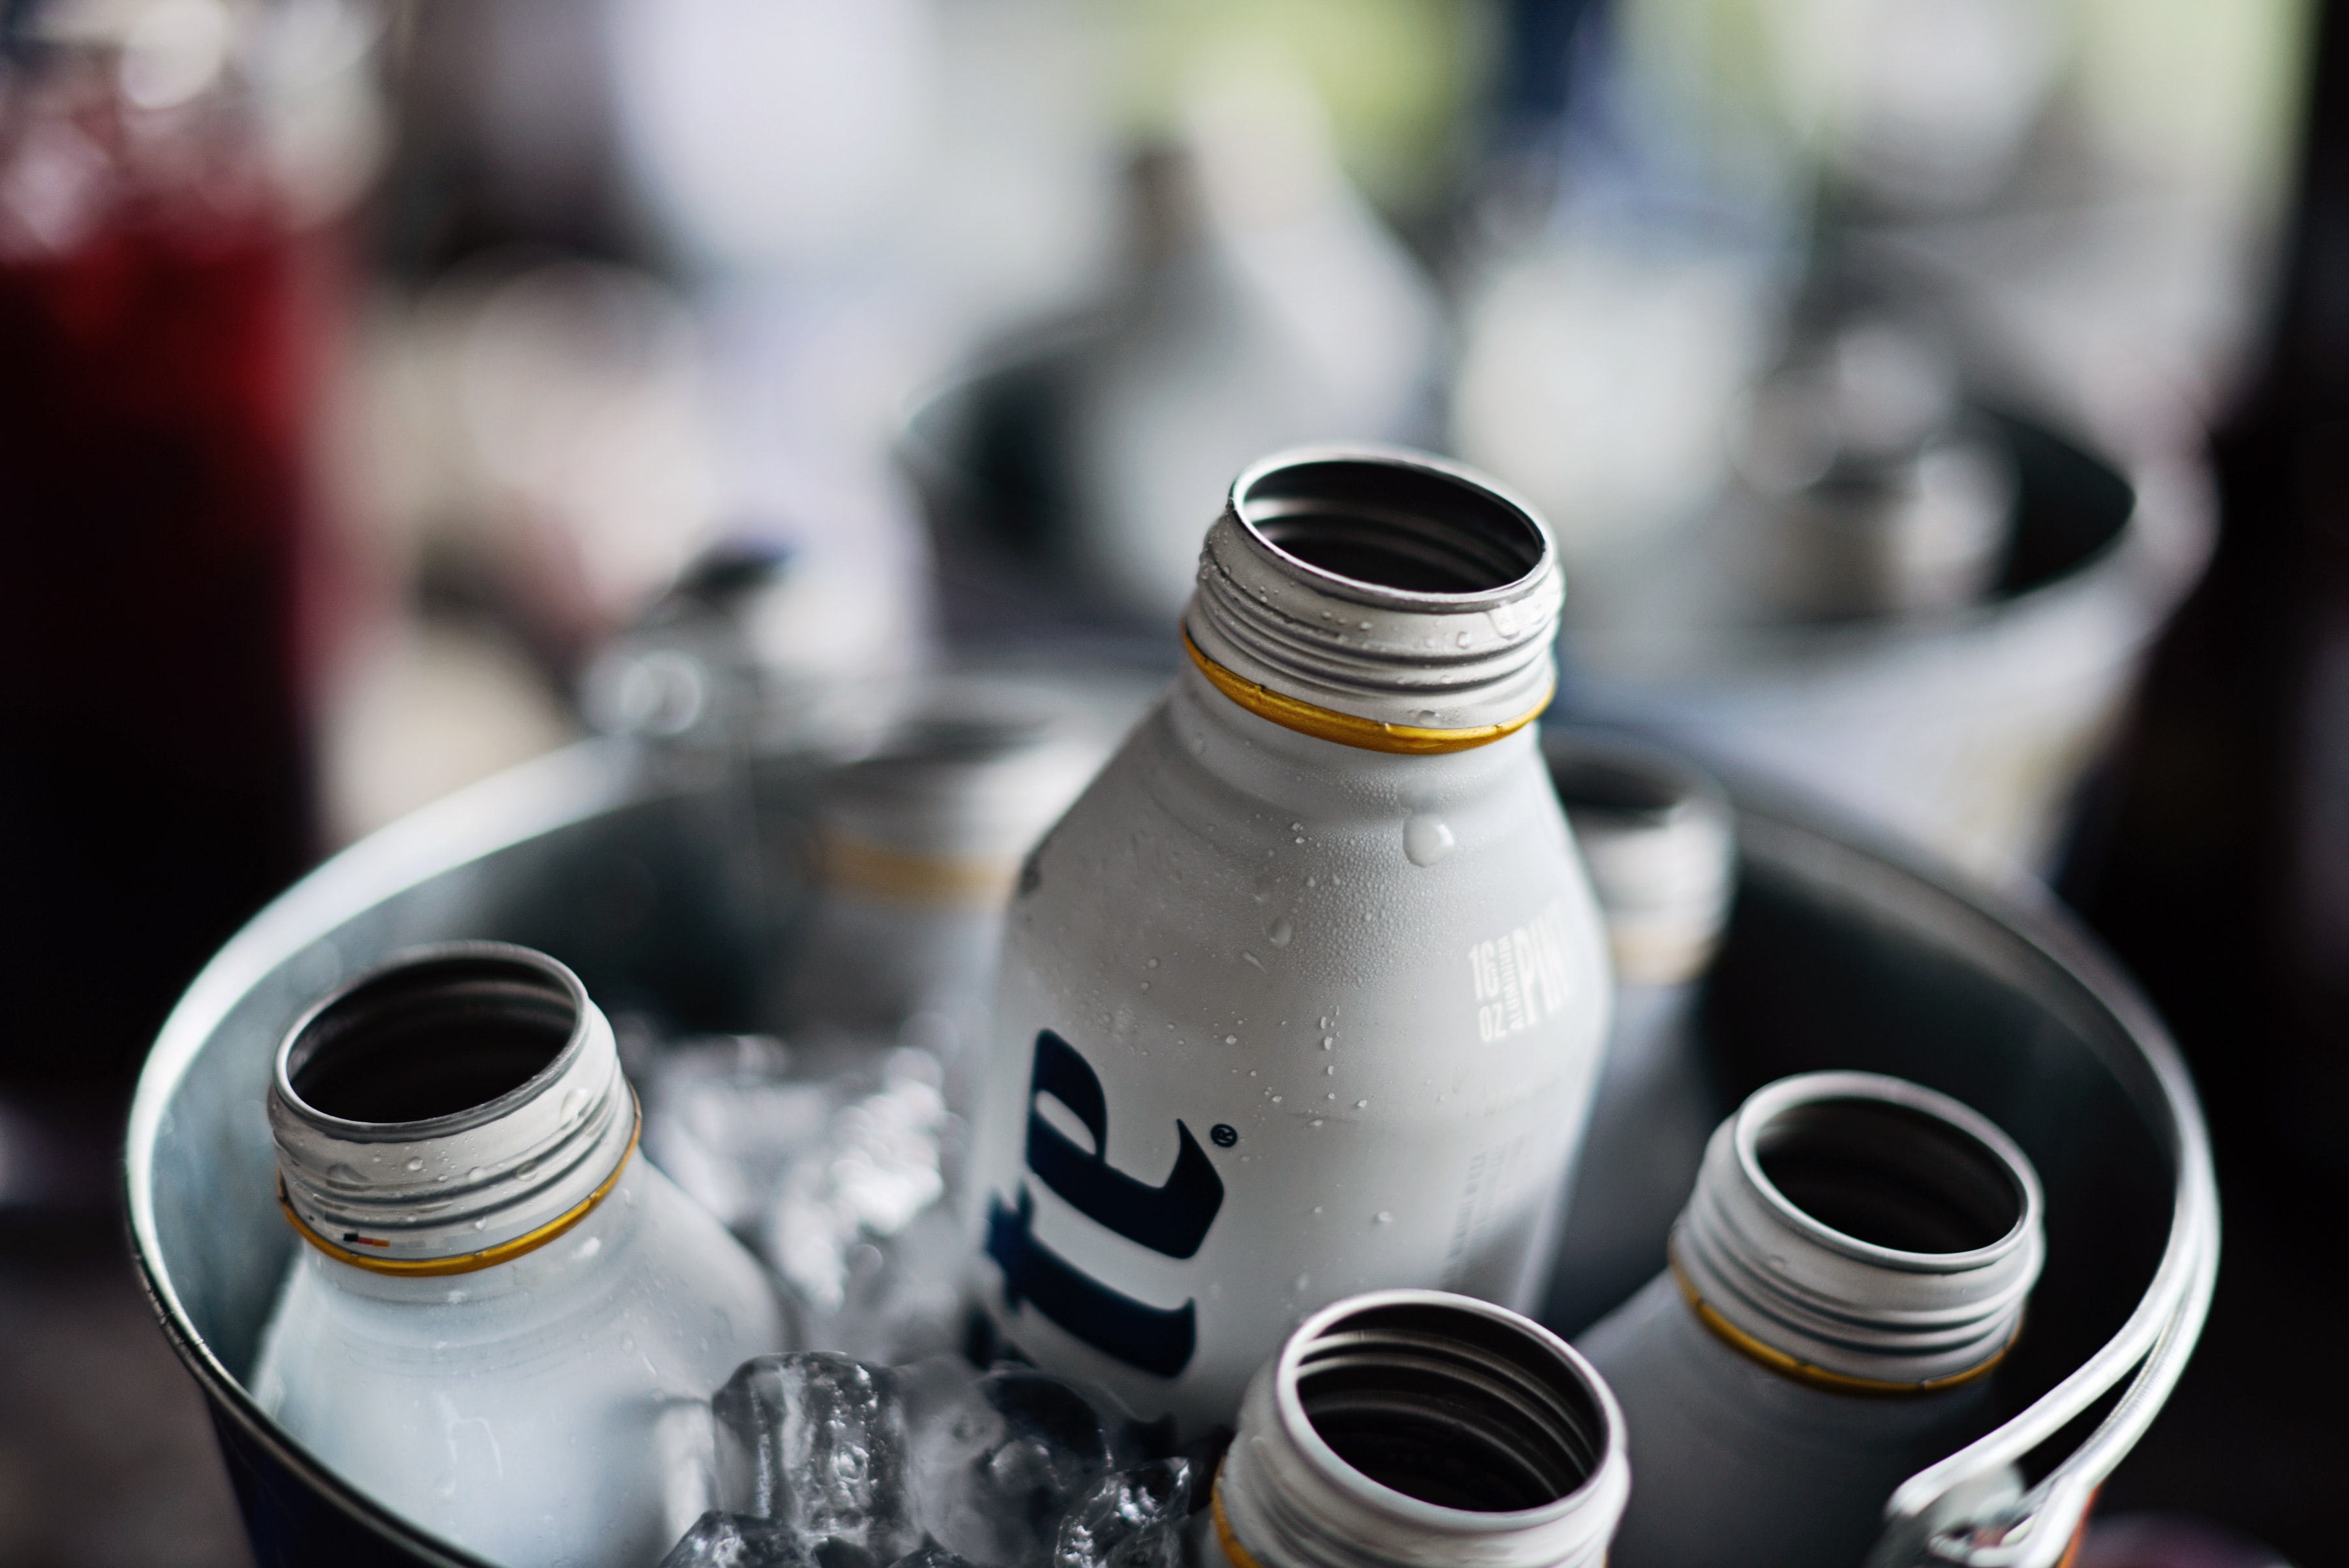 shallow focus photography of liquor bottles inside a bucket filled with ice